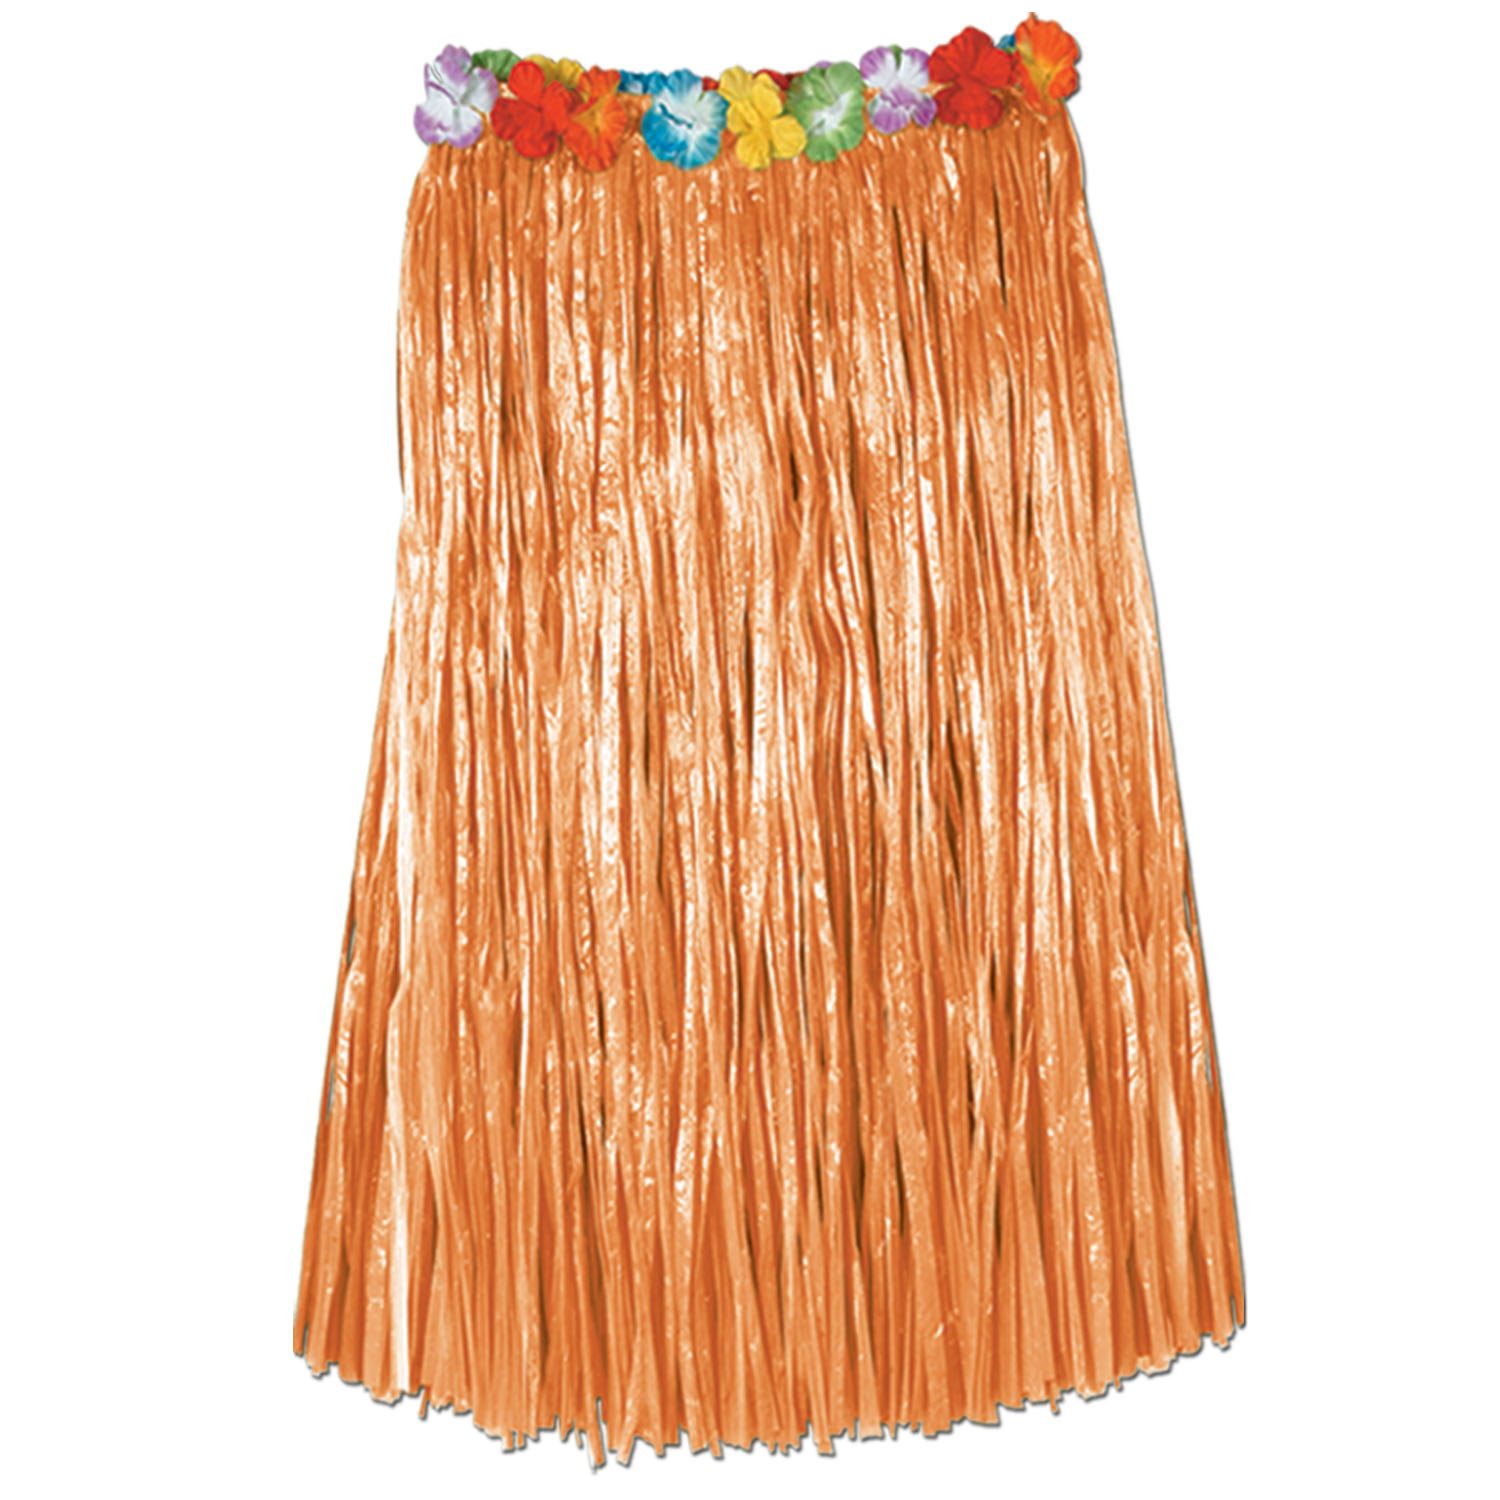 Adult Artificial Grass Hula Skirt (Pack of 12) .